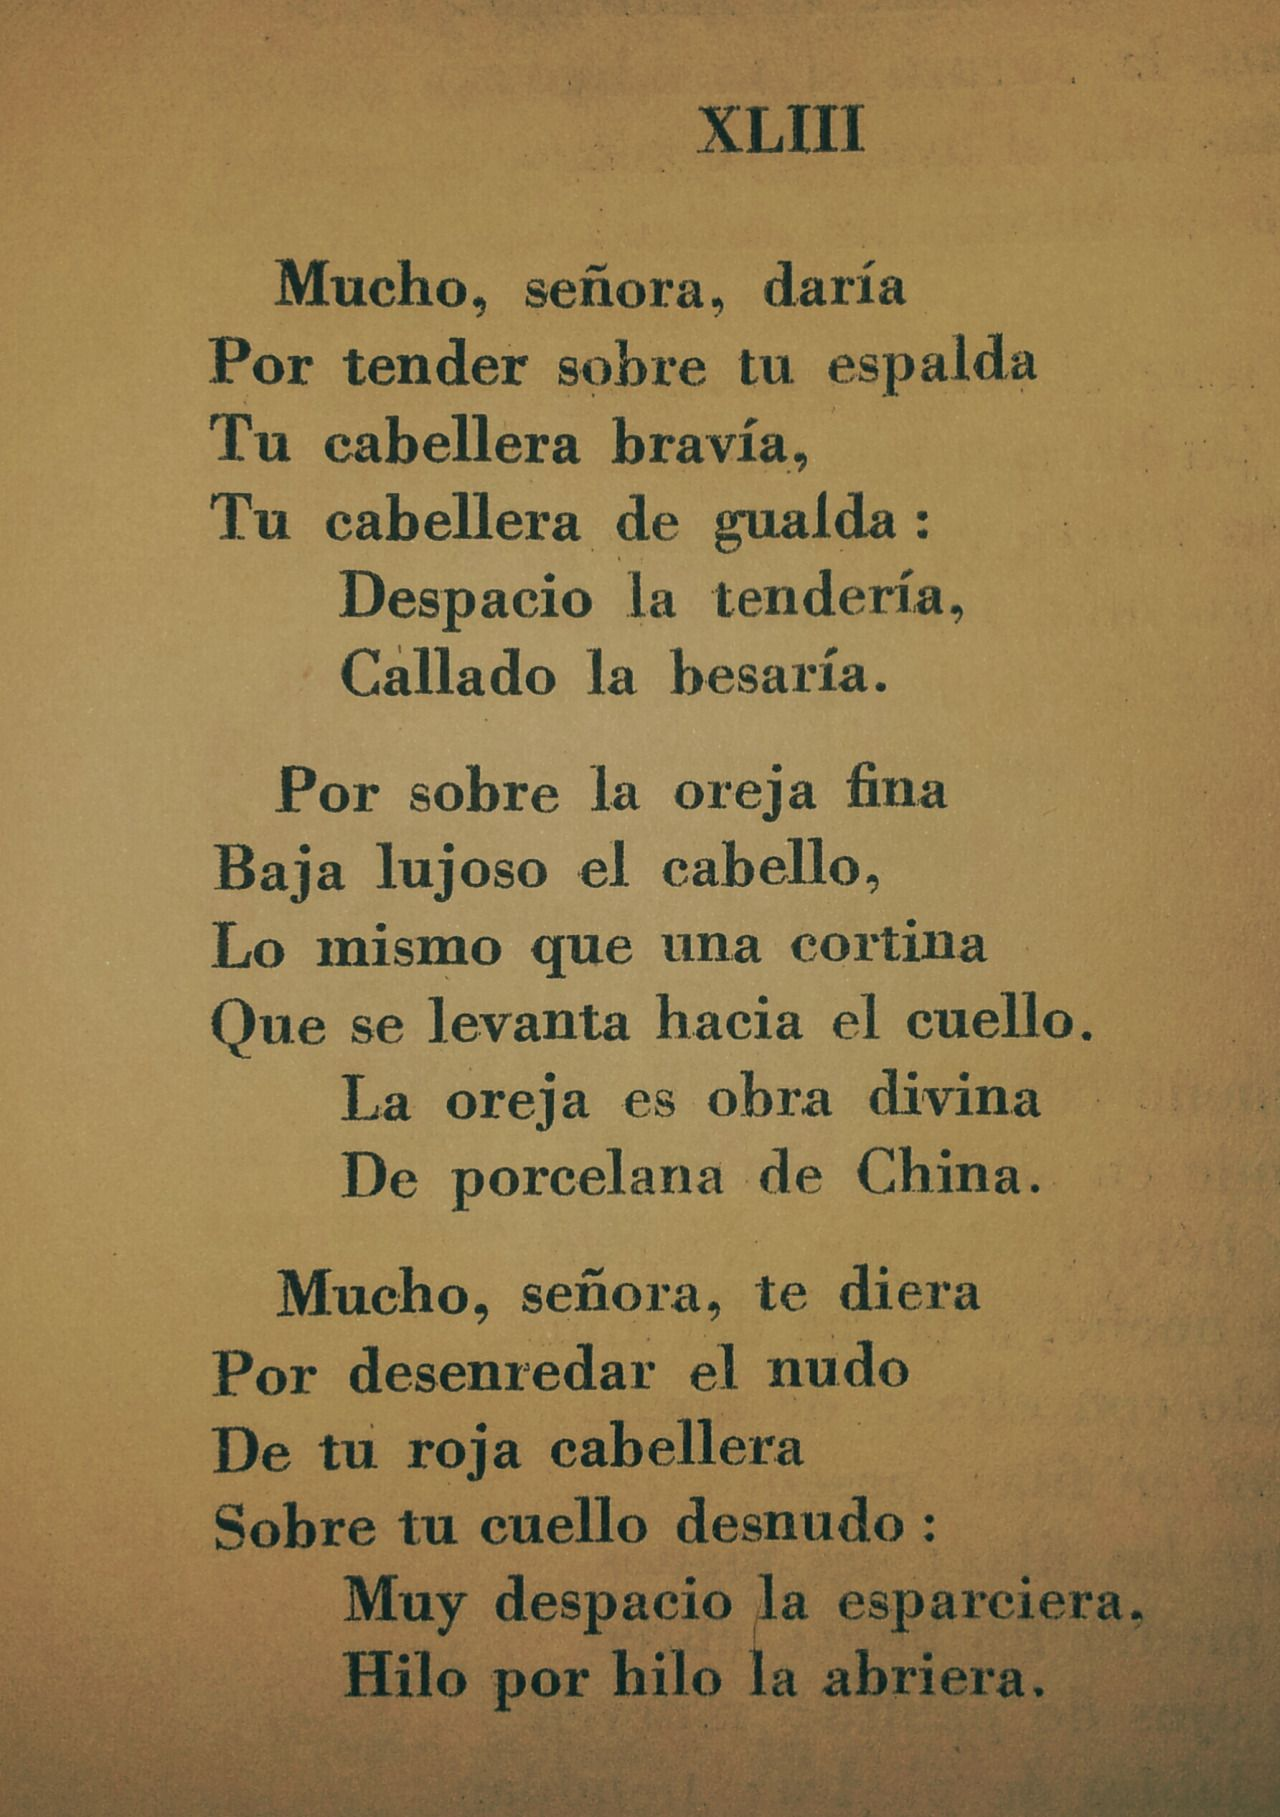 Poemas De Charles Bukowski Sobre El Amor Jose Marti With Images Words Best Poems How To Memorize Things